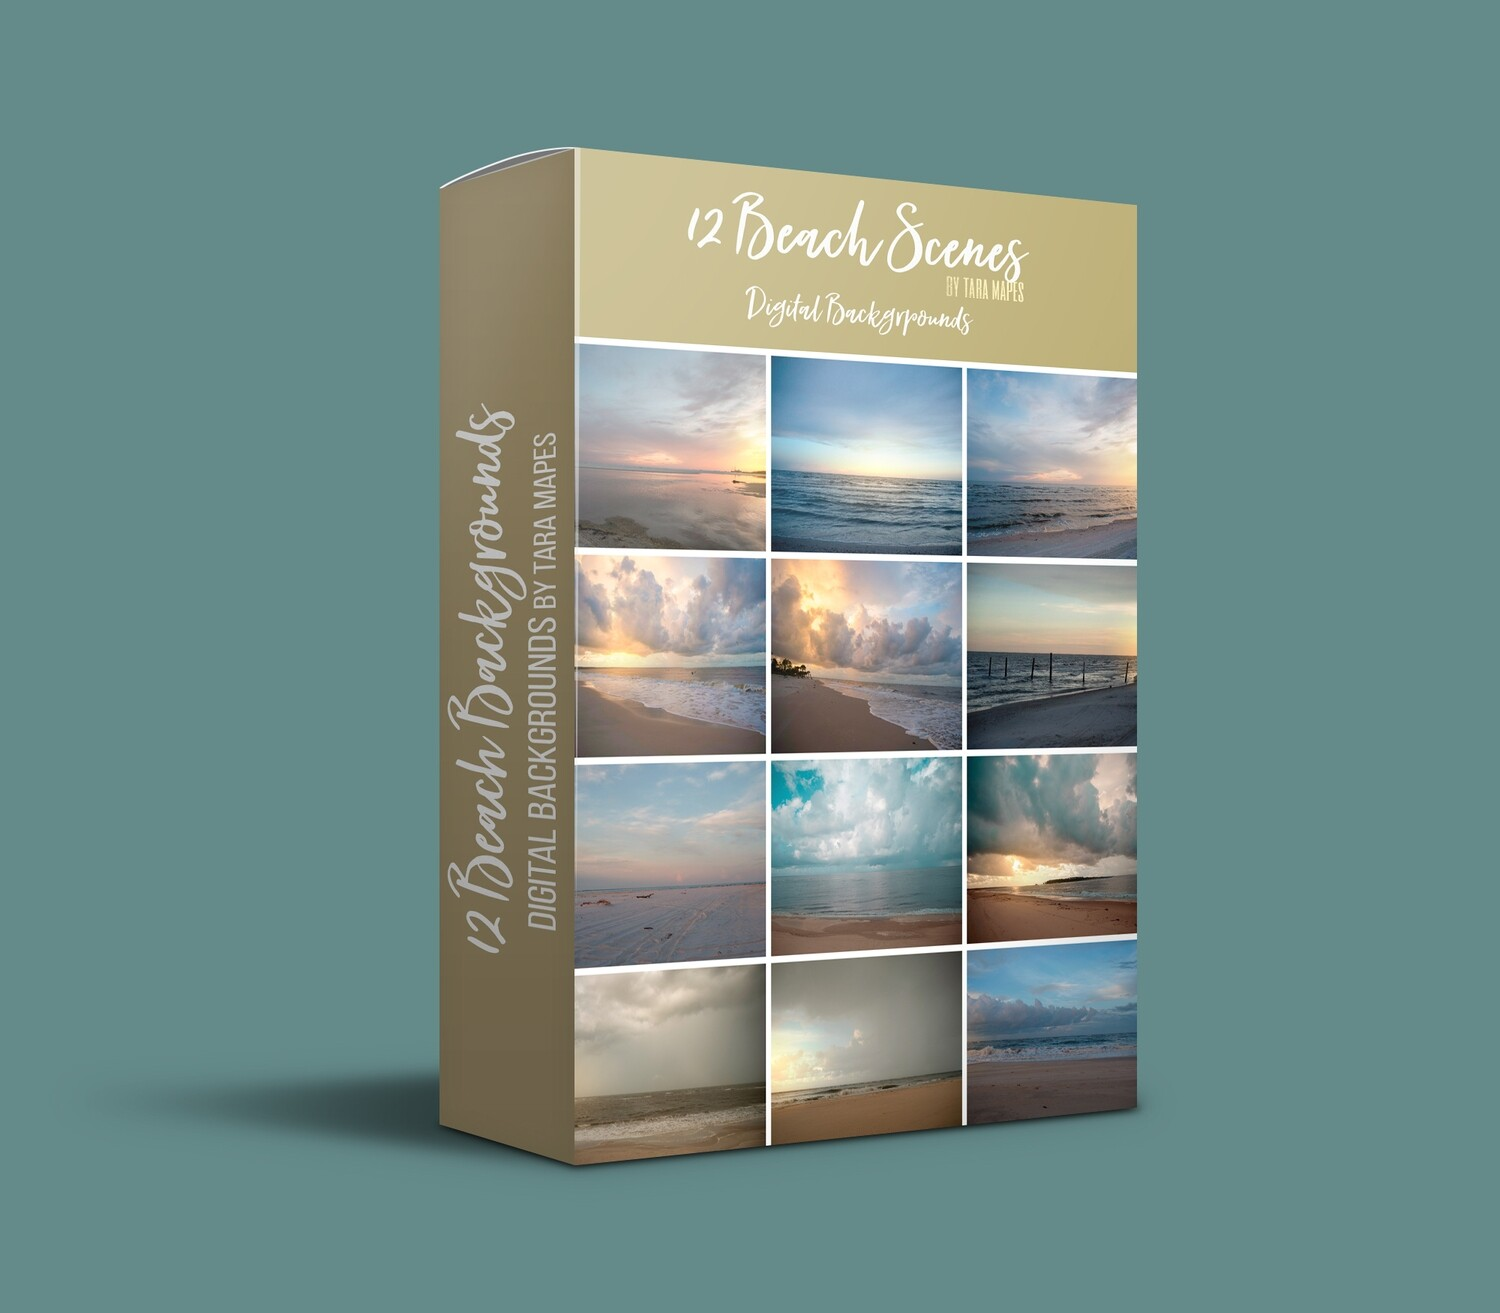 12 Beach Digital Backgrounds - SET OF 12  - Beaches - Stormy Beach Cape Bay - Ocean Pier - Pastel Beach Scene - Digital Background Backdrop